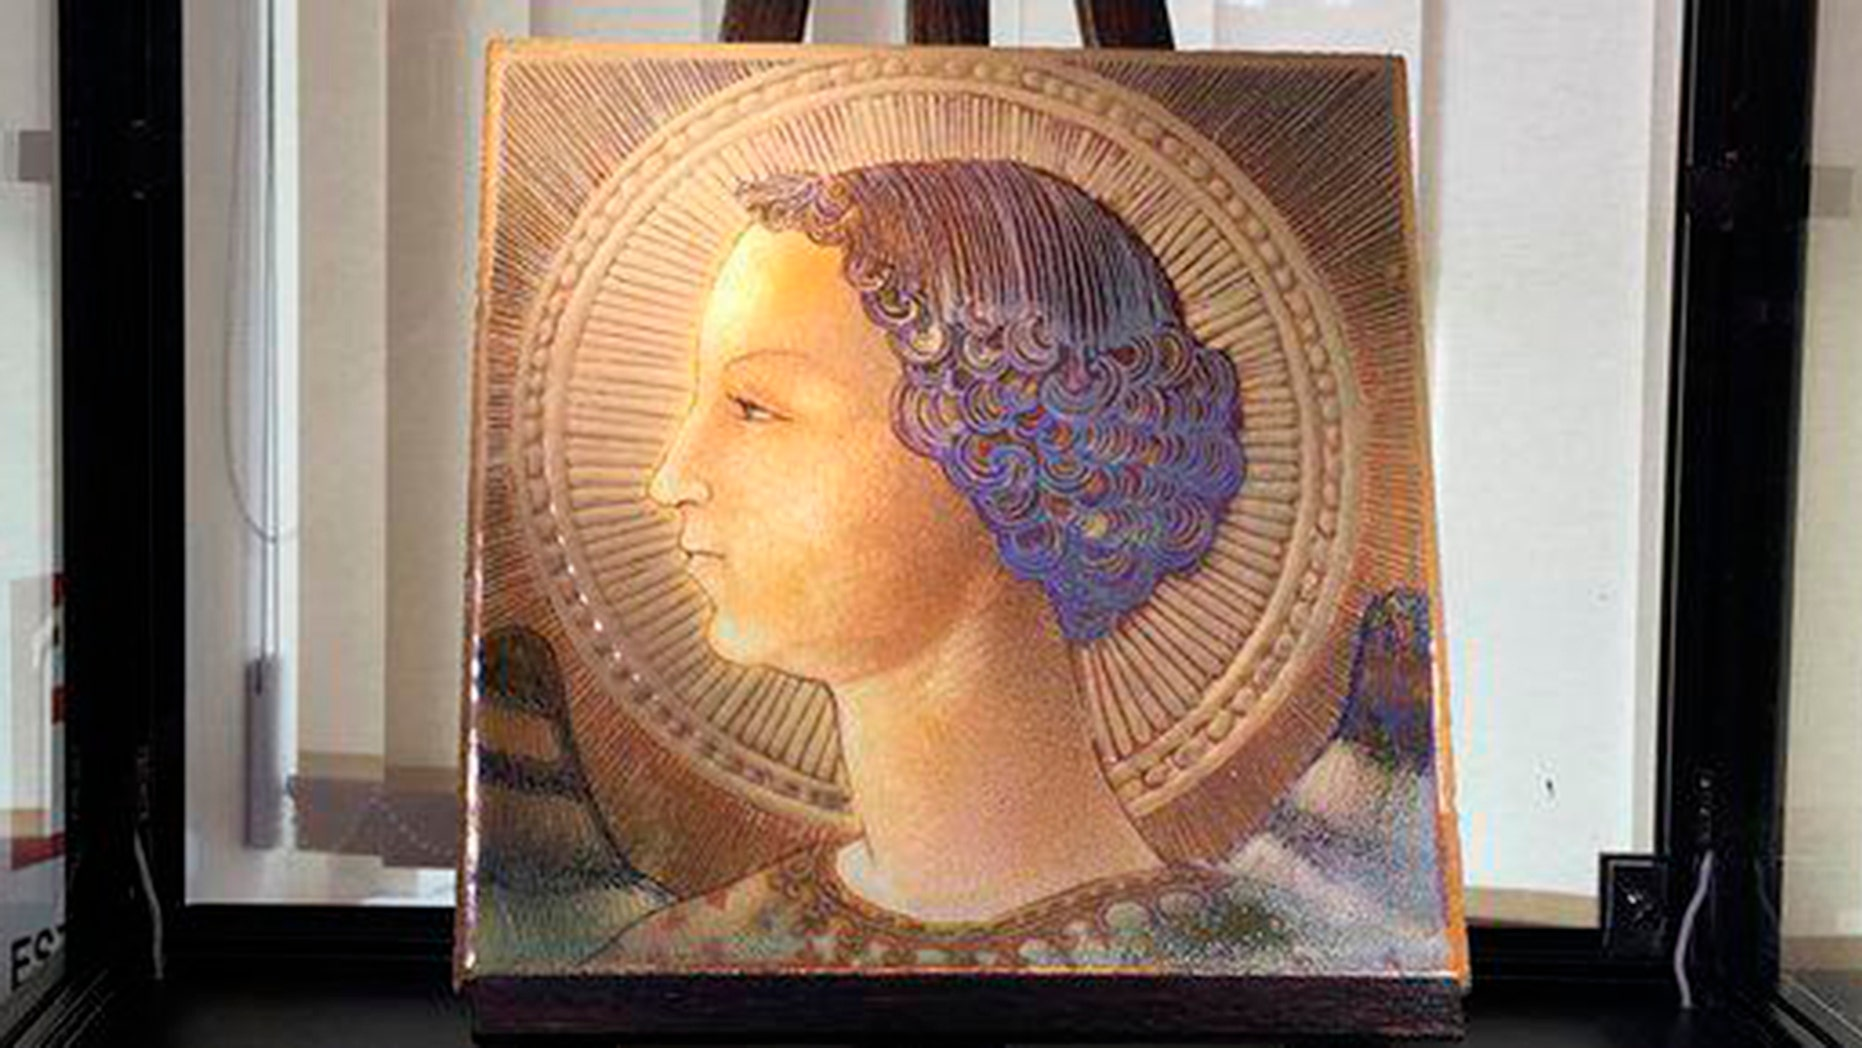 Experts in Italy believe that the work portraying the Archangel Gabriel is a self-portrait of Leonardo da Vinci and the famous artist's earliest surviving work.